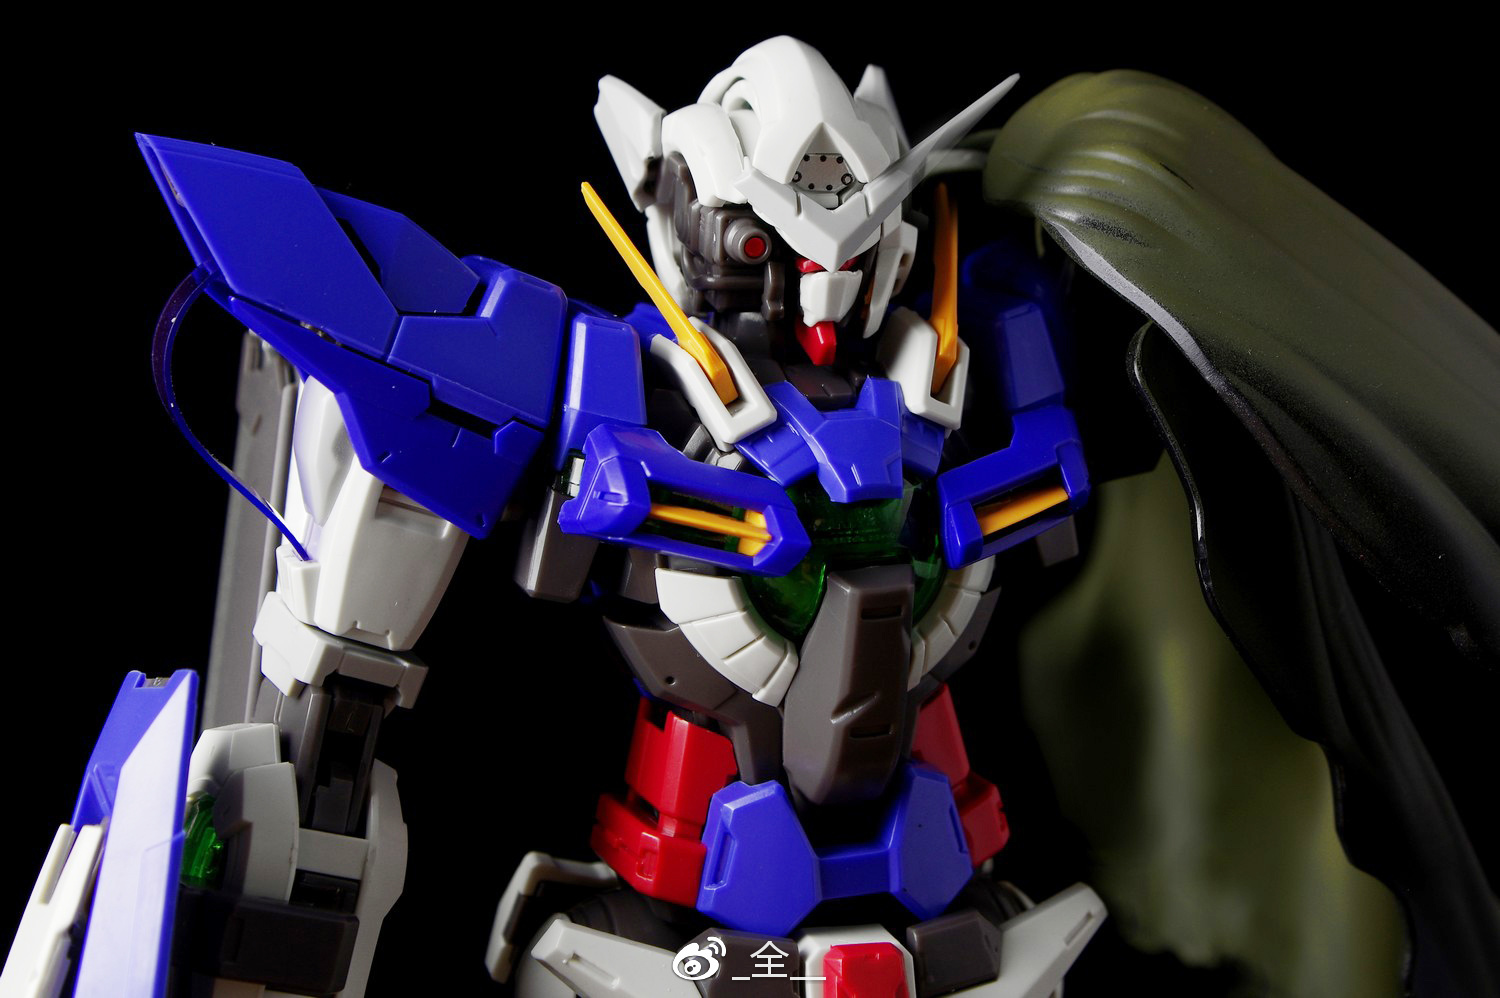 S269_mg_exia_led_hobby_star_inask_078.jpg